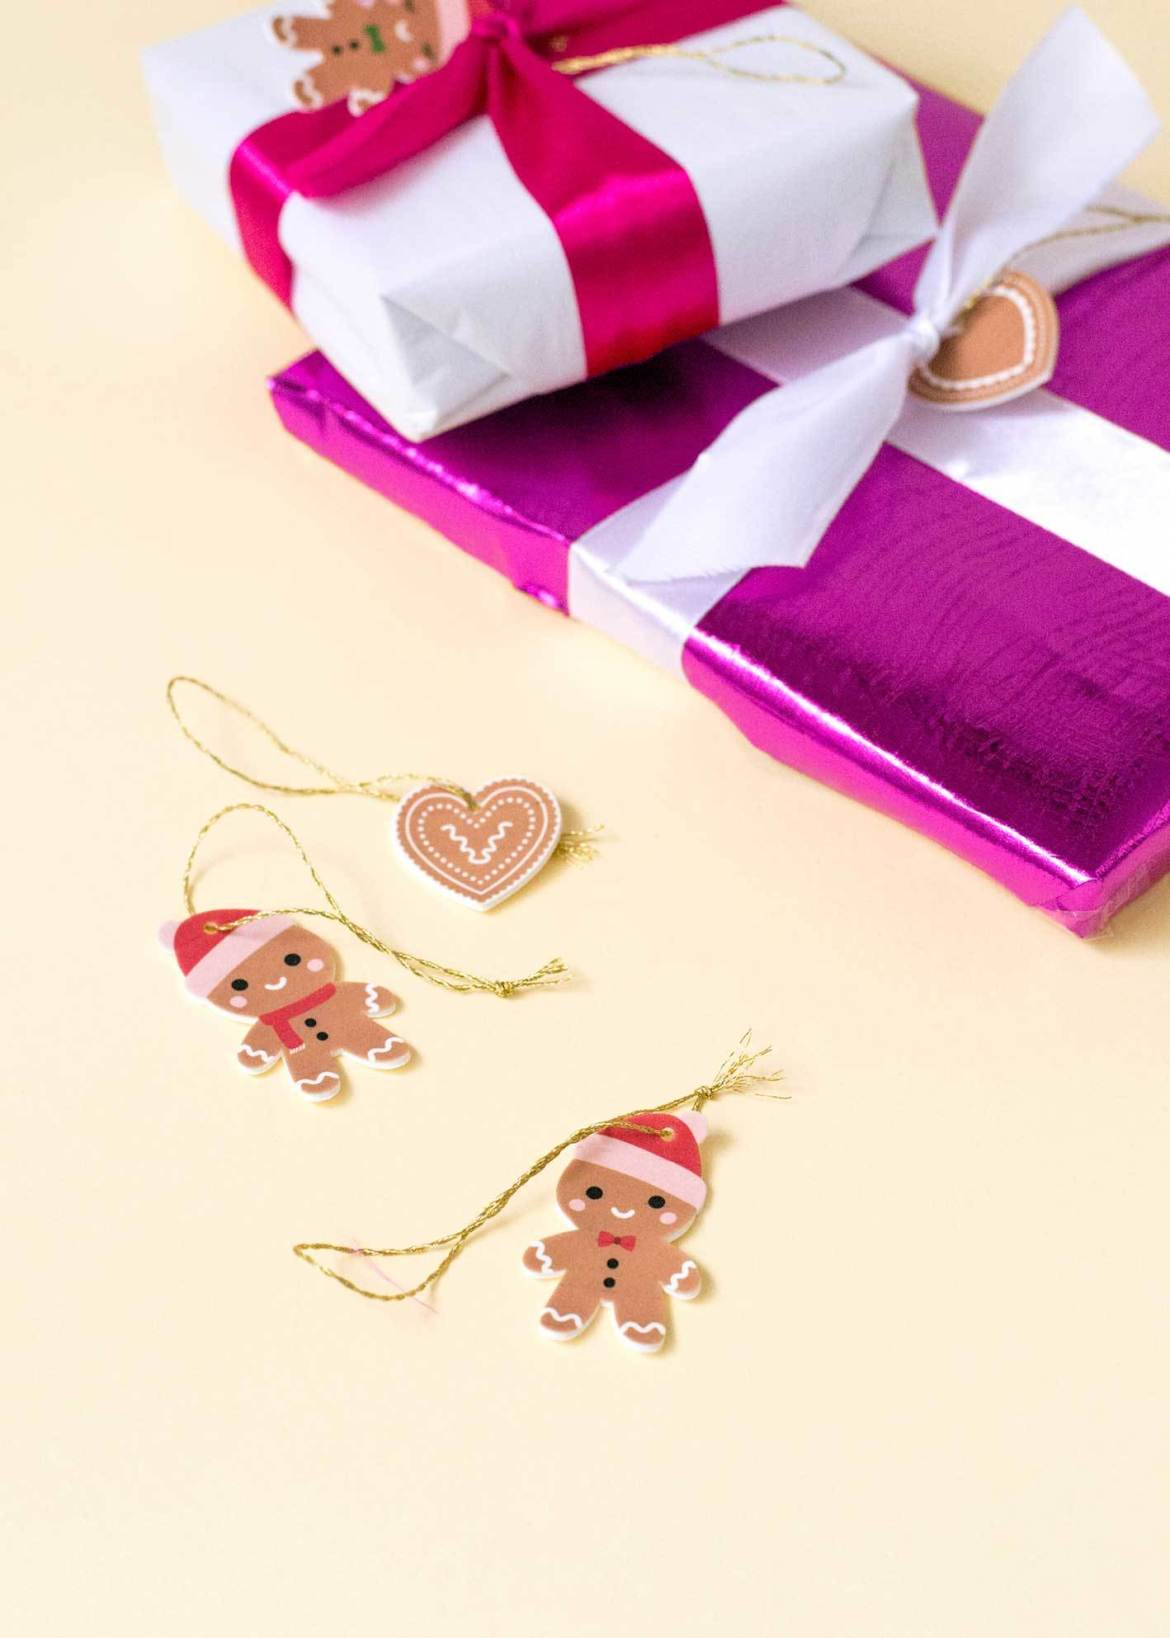 Make it: Festive gingerbread gift toppers that double as Christmas ornaments!